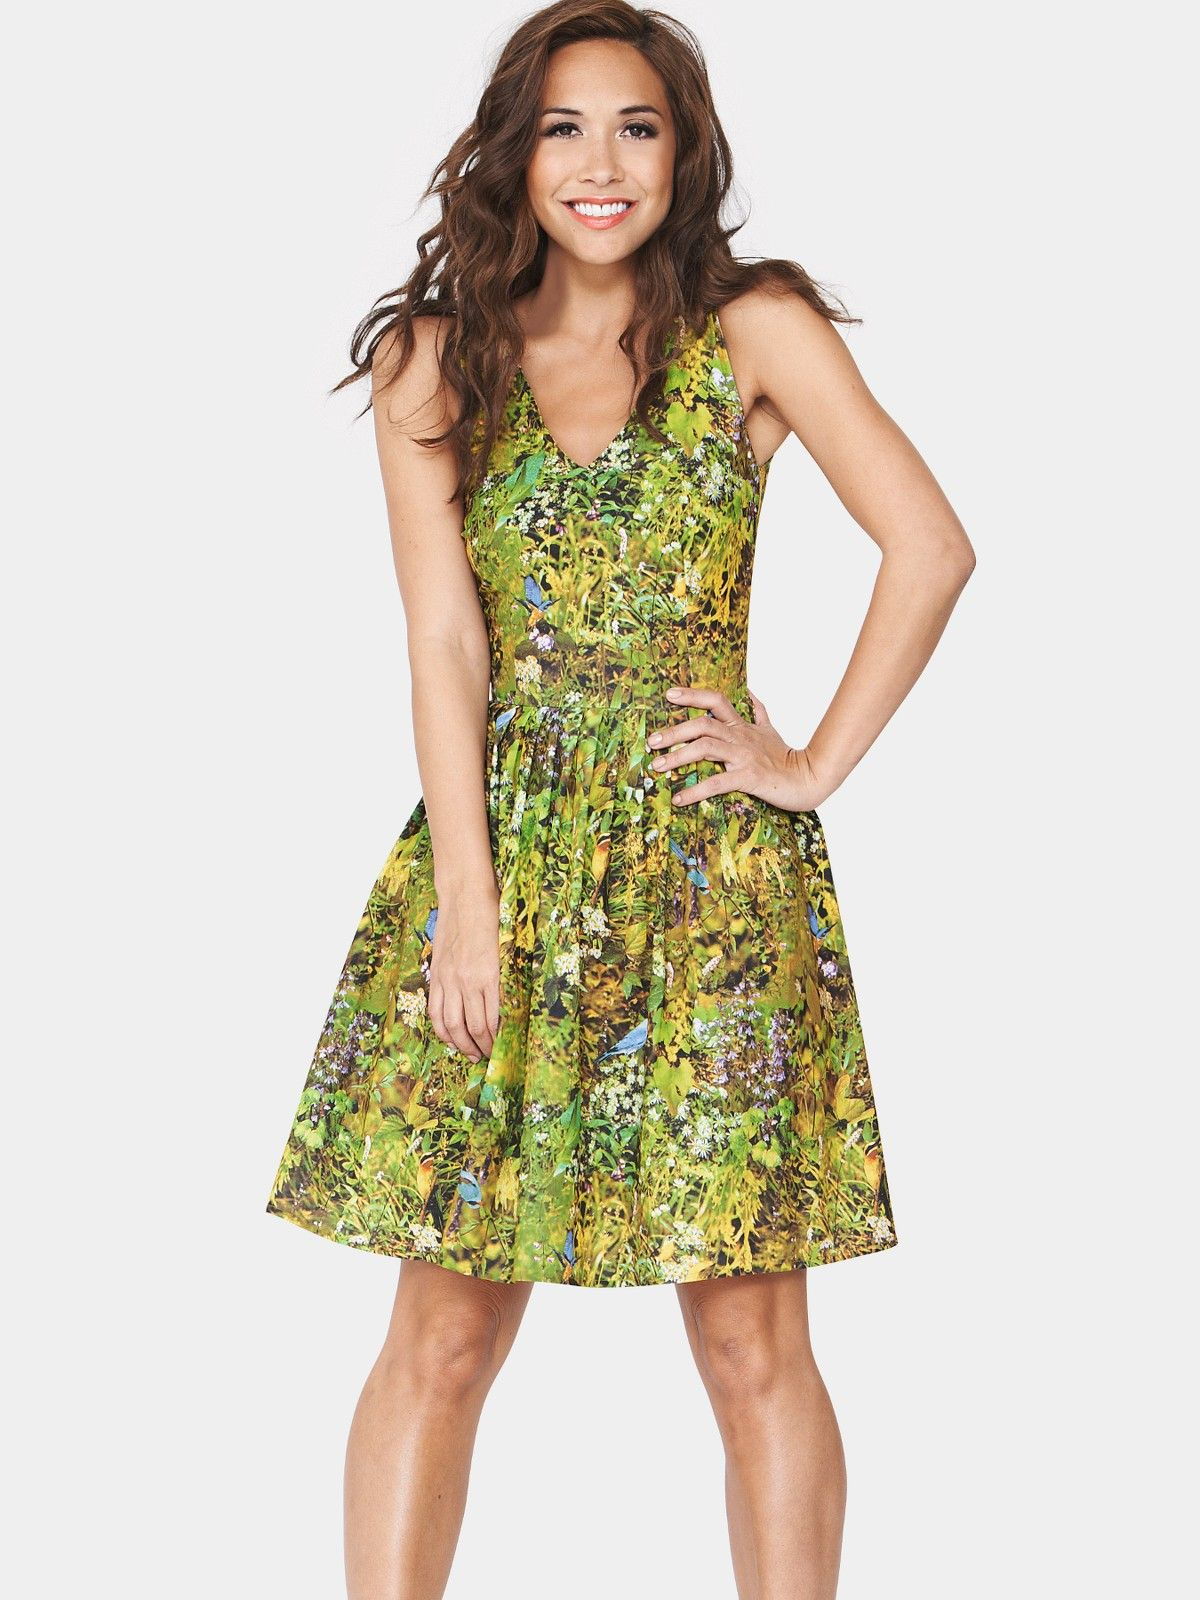 Myleene klass floral printed day dress littlewoods sweet myleene klass floral printed day dress littlewoods ombrellifo Image collections